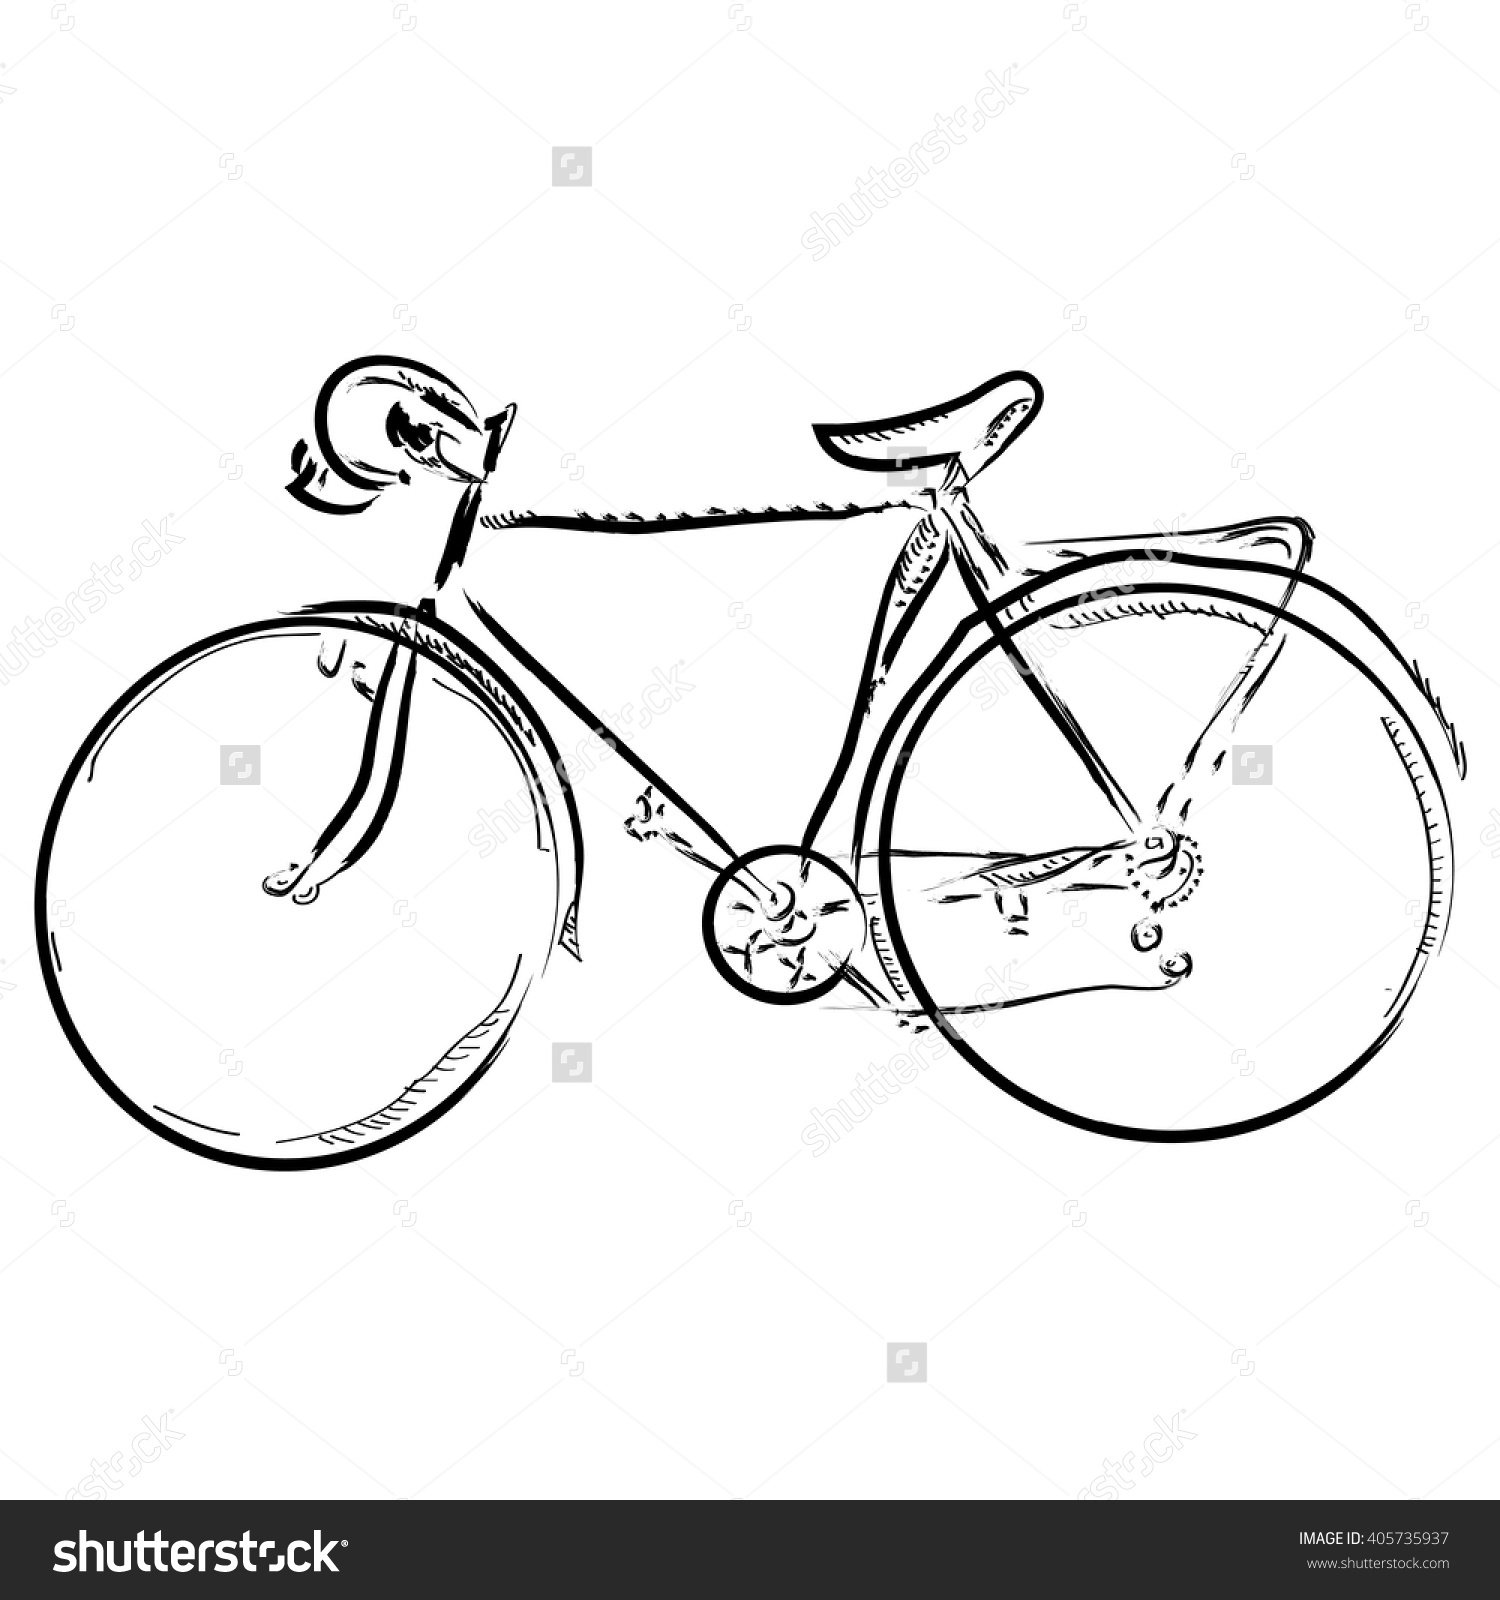 1500x1600 Simple Drawing Of A Bike Hand Draw Simple Sketch Bike Vector Stock